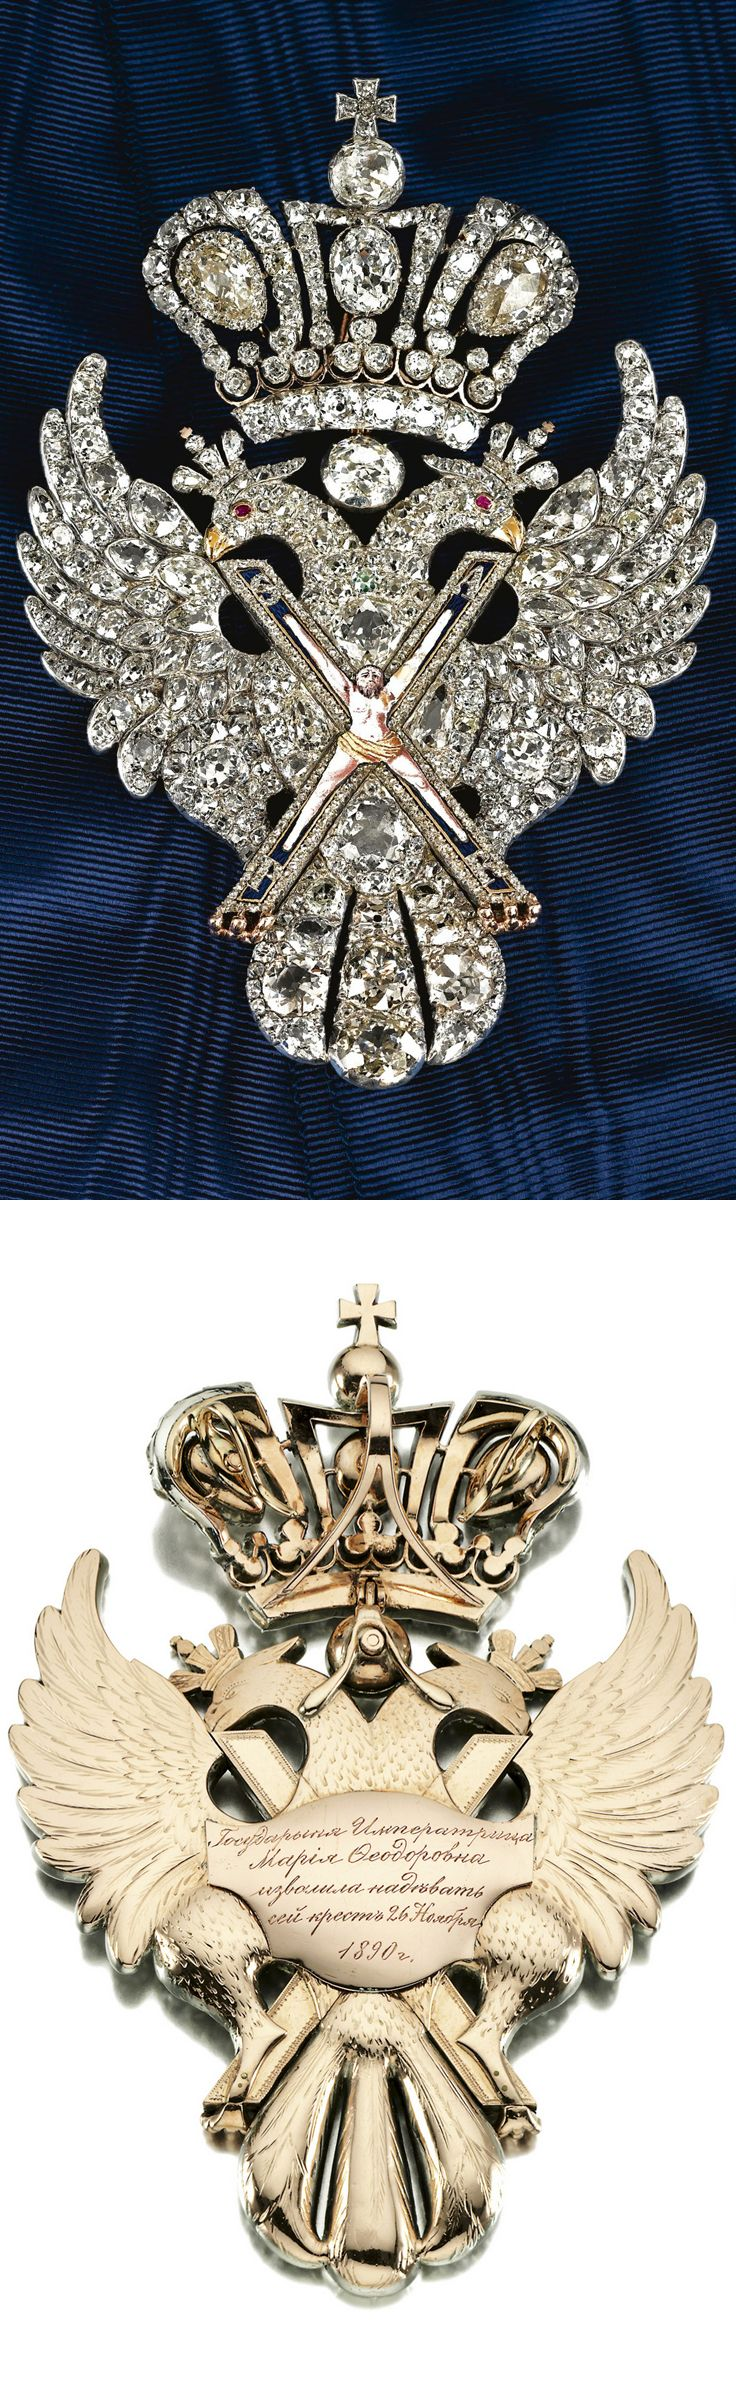 A magnificent and highly important diamond-set Badge of the Order of St. Andrew, unsigned, circa 1800, with central finely-enamelled figure of the Saint on Cross, with diamond borders and letters SAPR, supported on a crowned double-headed eagle formed entirely of diamonds except for ruby eyes and gold beaks and claws, the gold reverse delicately engraved to simulate plumage and carrying a later-applied gold plaquette engraved, The Empress Maria Fedorovna agreed to wear this Badge in 1890.